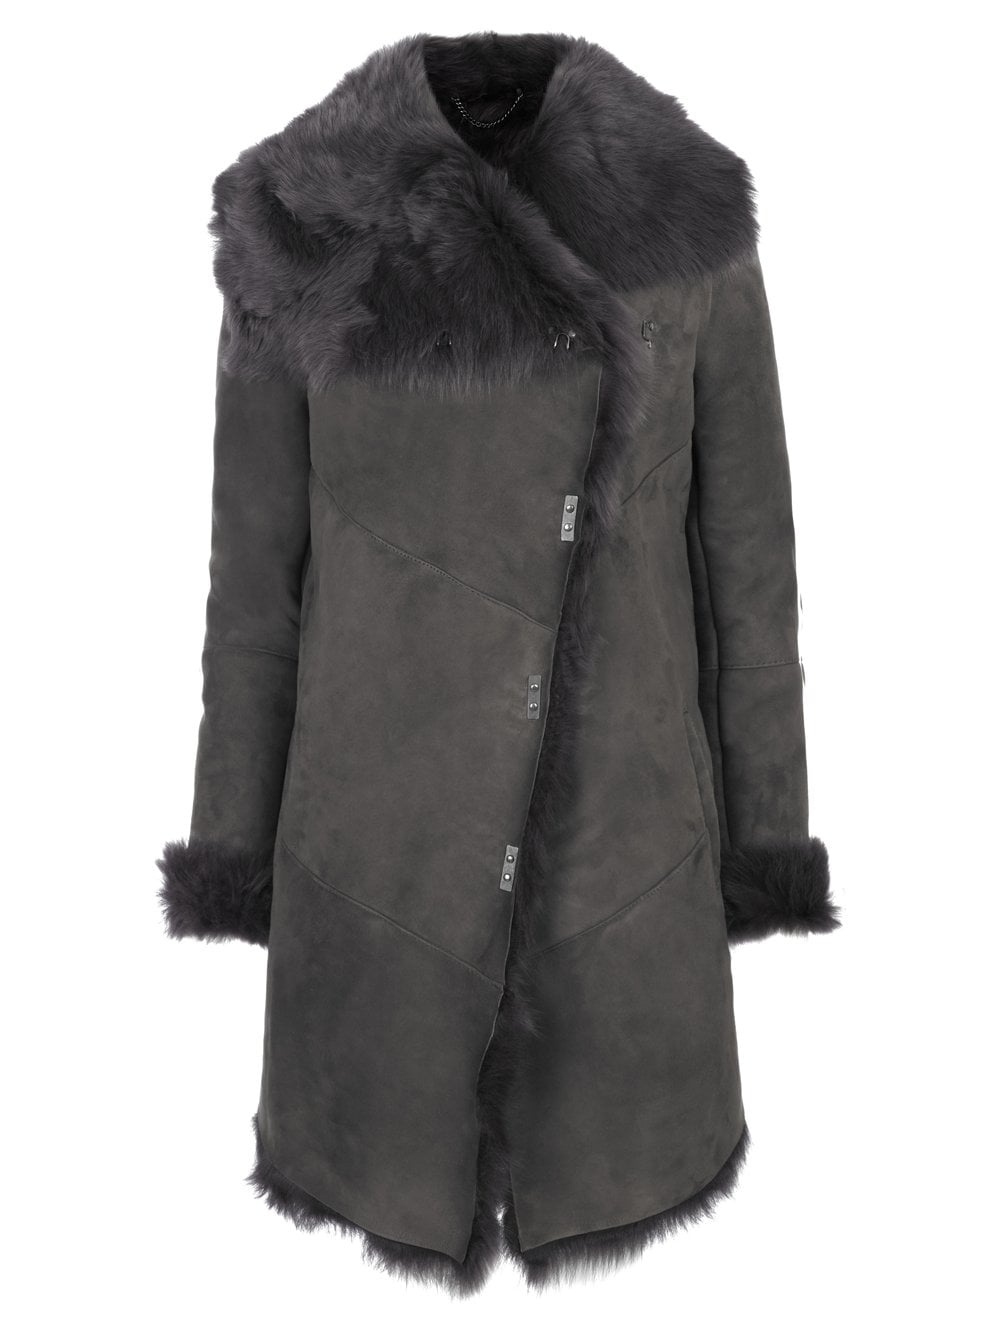 Shearling Coat in Storm Grey